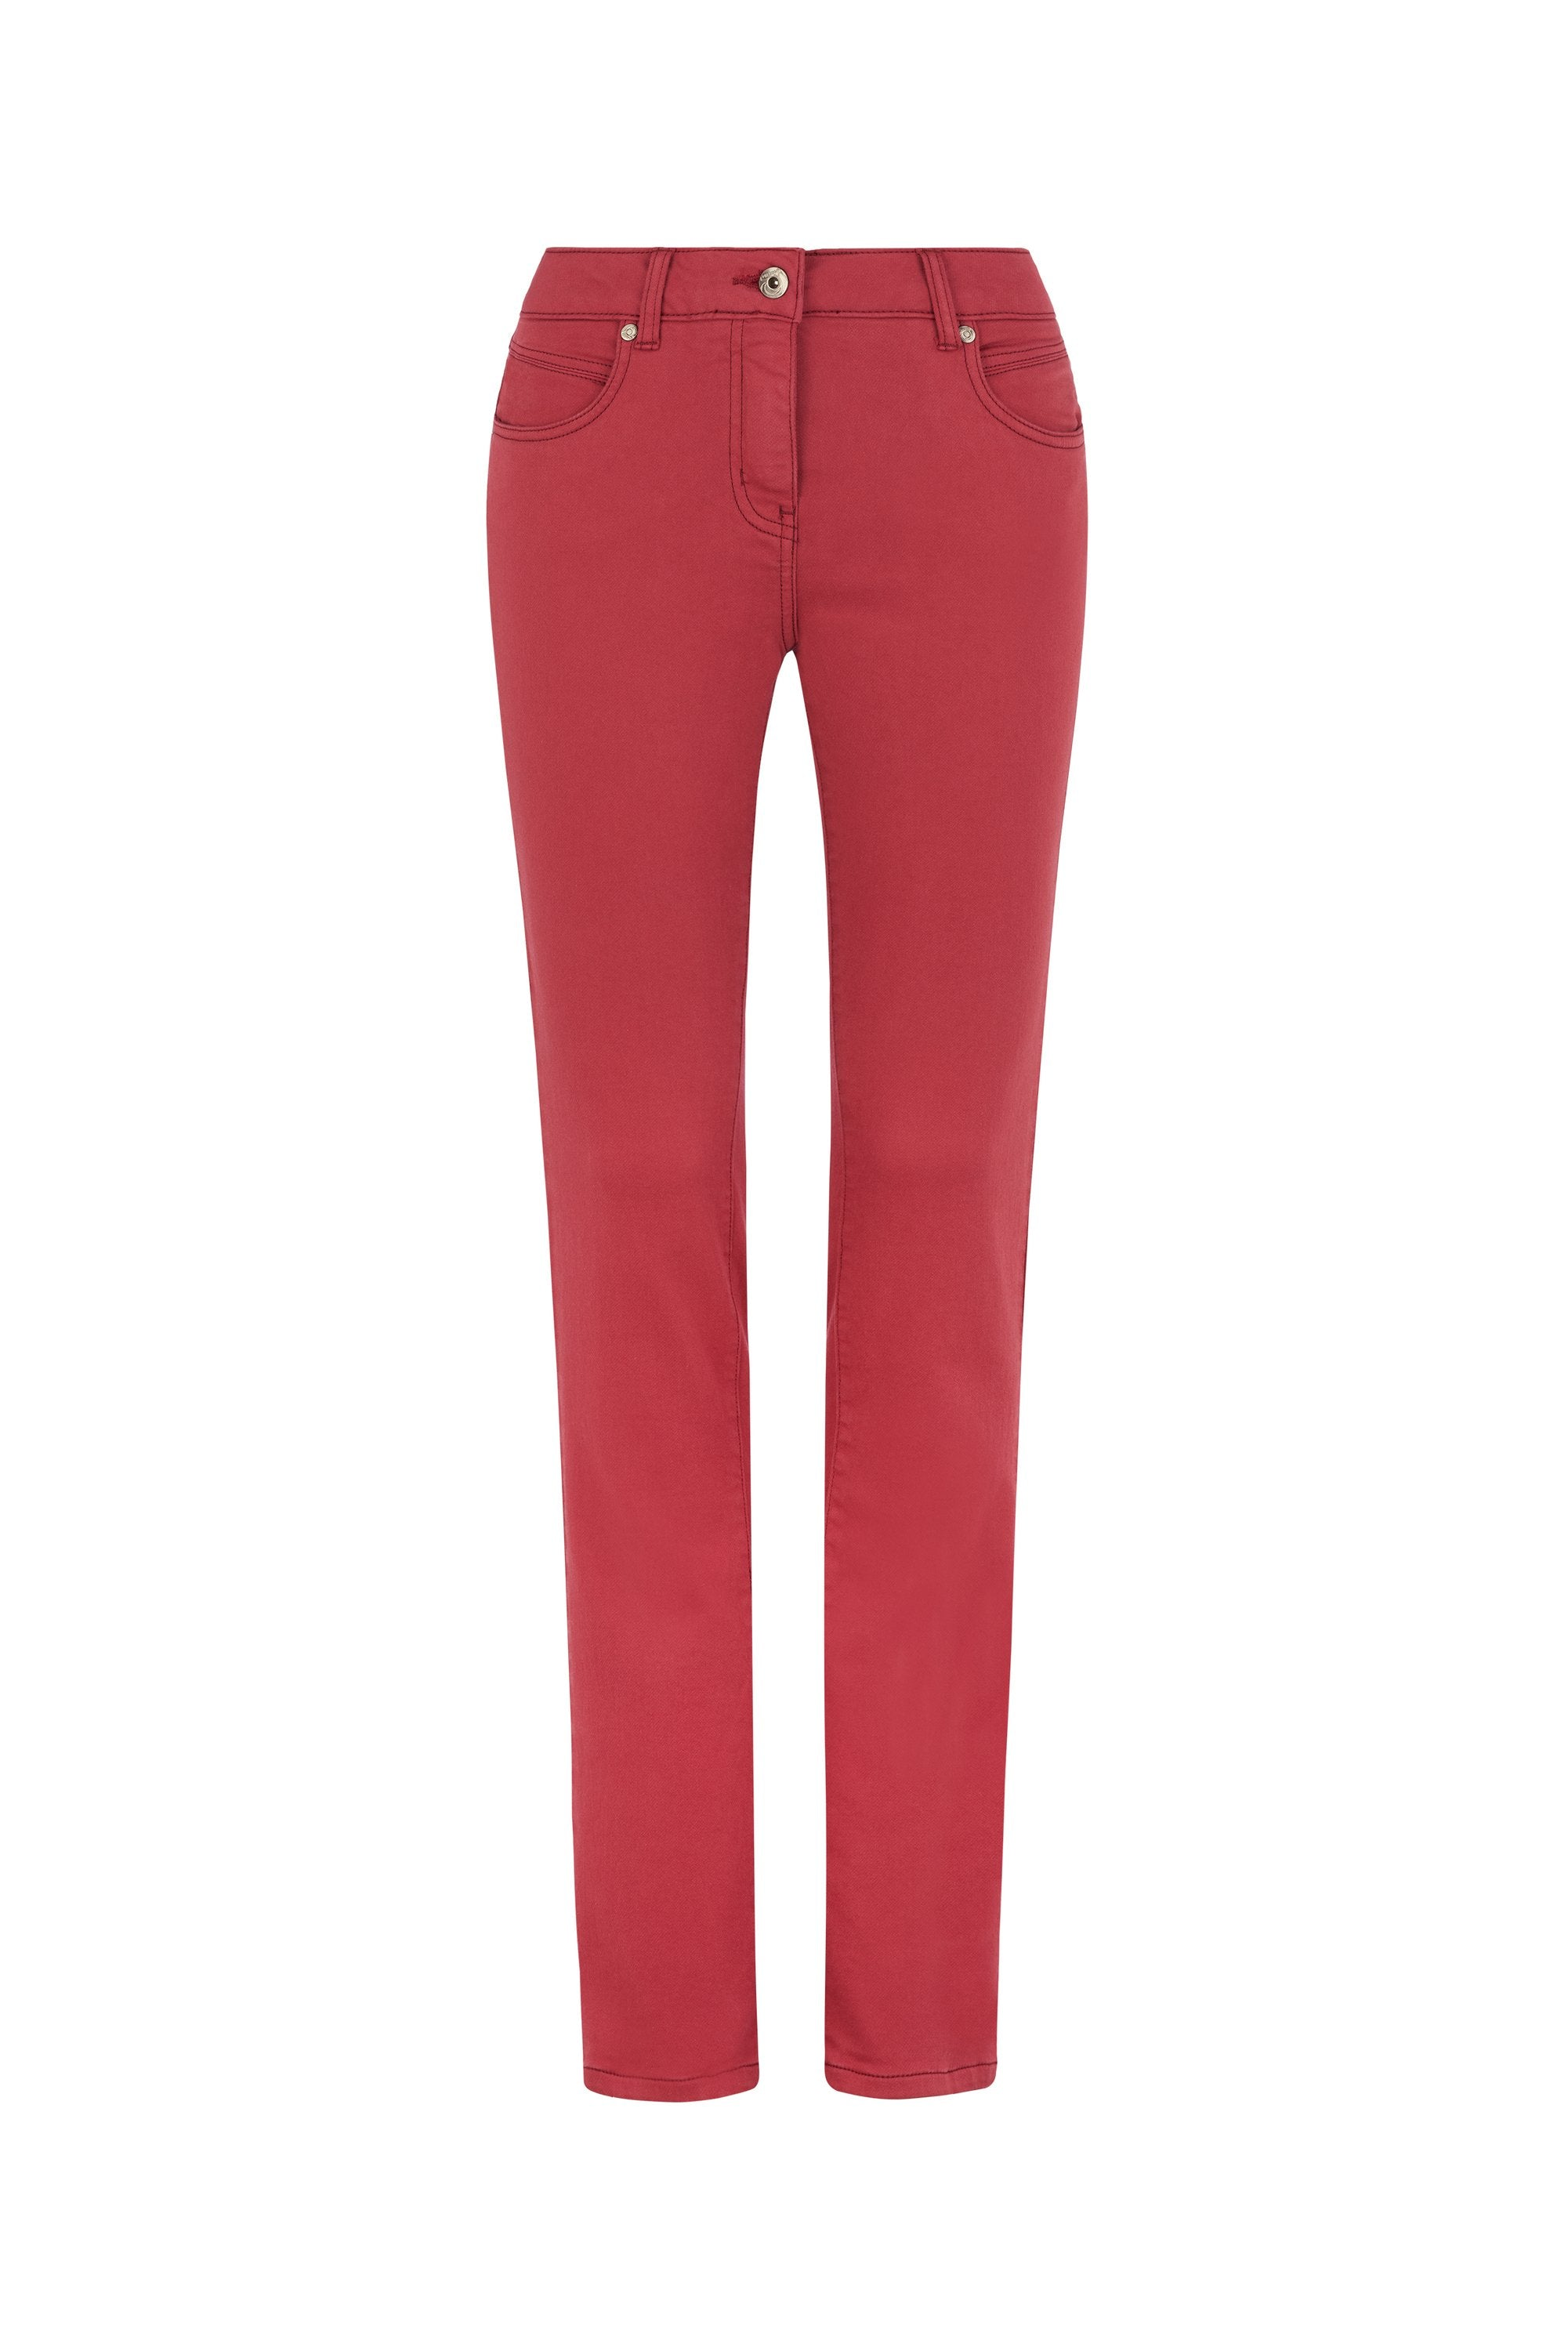 Damen Hose Victoria Supersoft Color